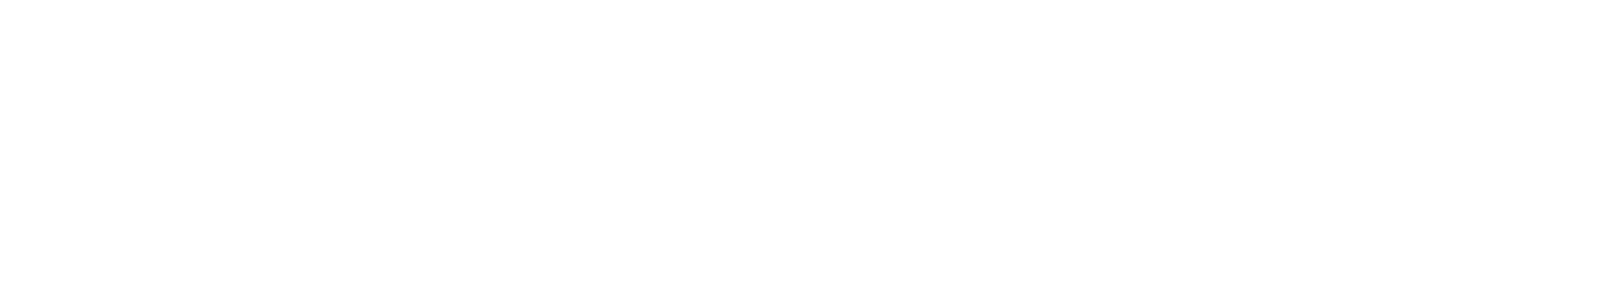 Area Agency on Aging Association logo